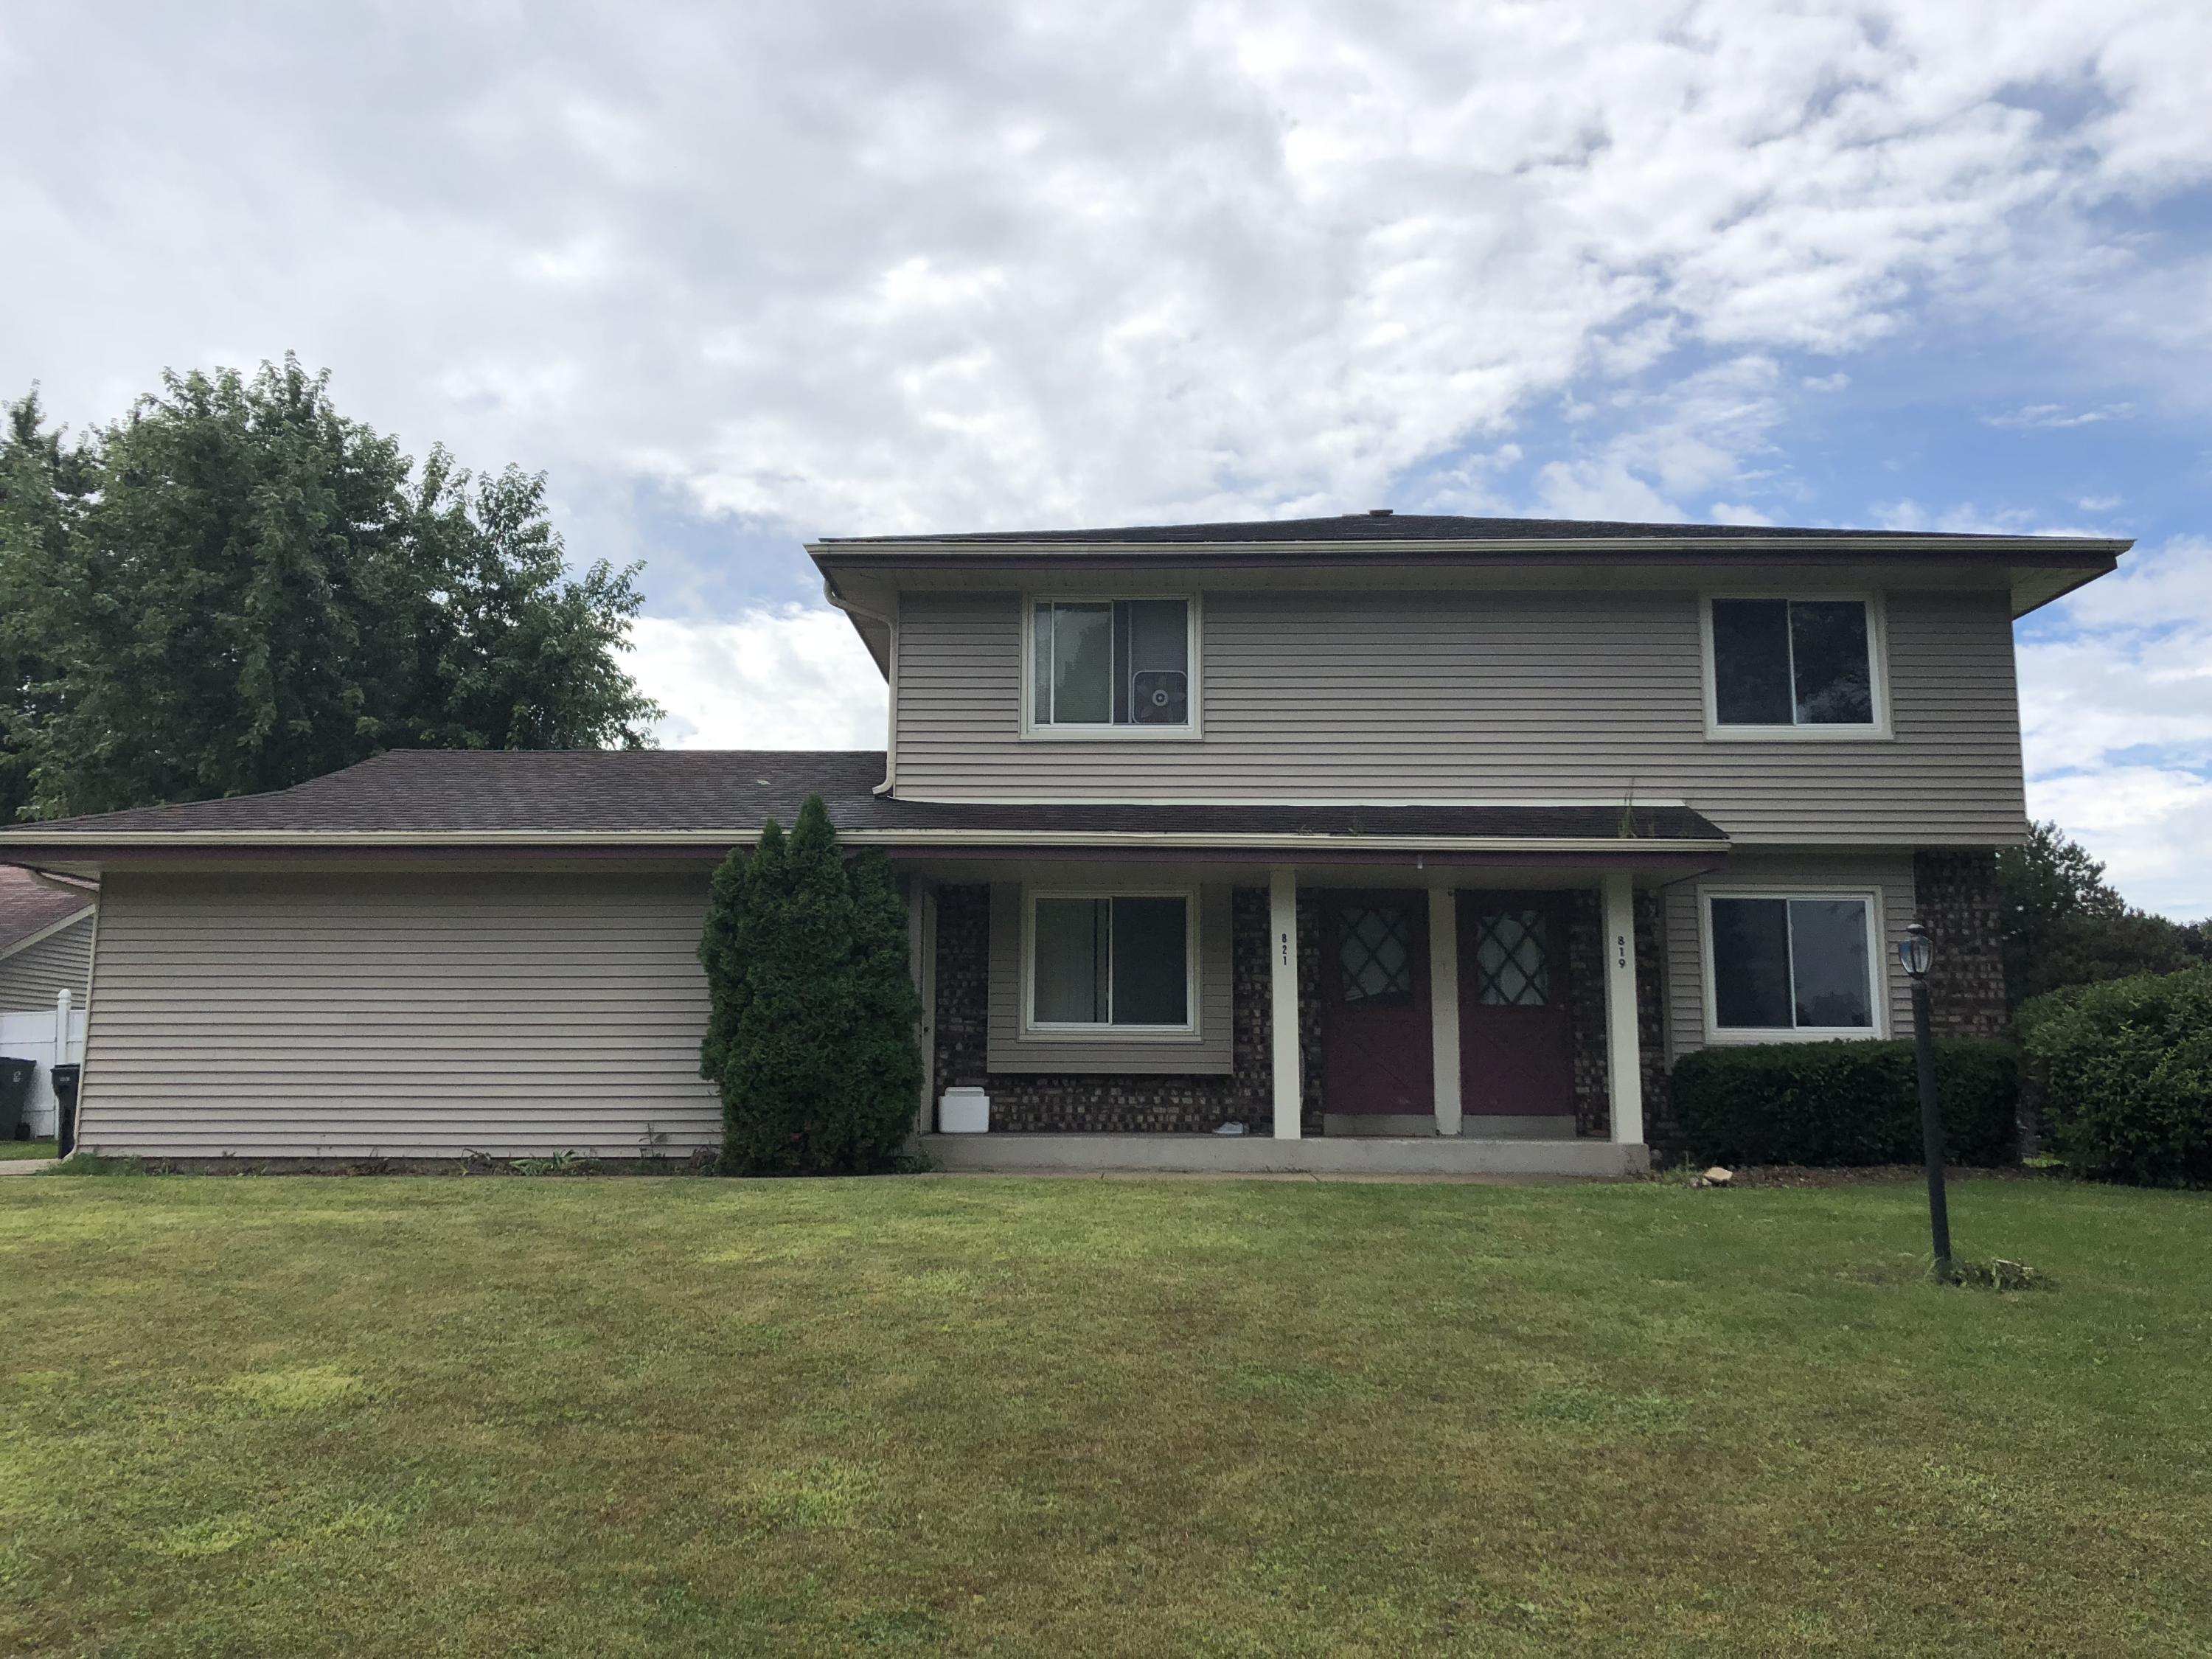 819 Wexford Ct, Hartland, Wisconsin 53029, 3 Bedrooms Bedrooms, 5 Rooms Rooms,1 BathroomBathrooms,Two-Family,For Sale,Wexford Ct,1,1603963